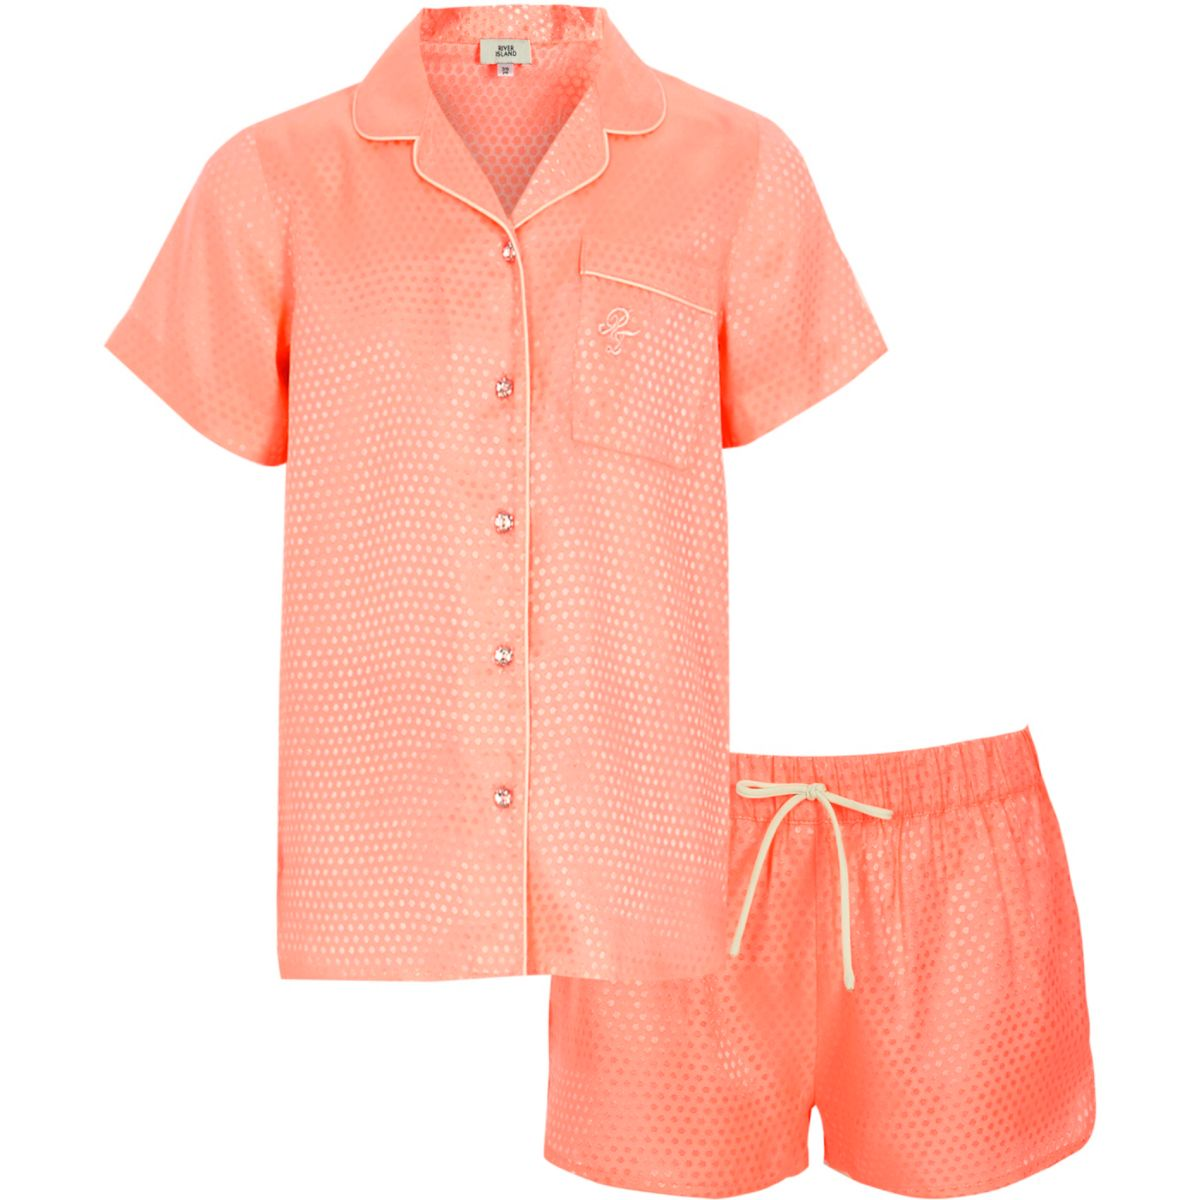 Girls coral jacquard shirt pyjama set